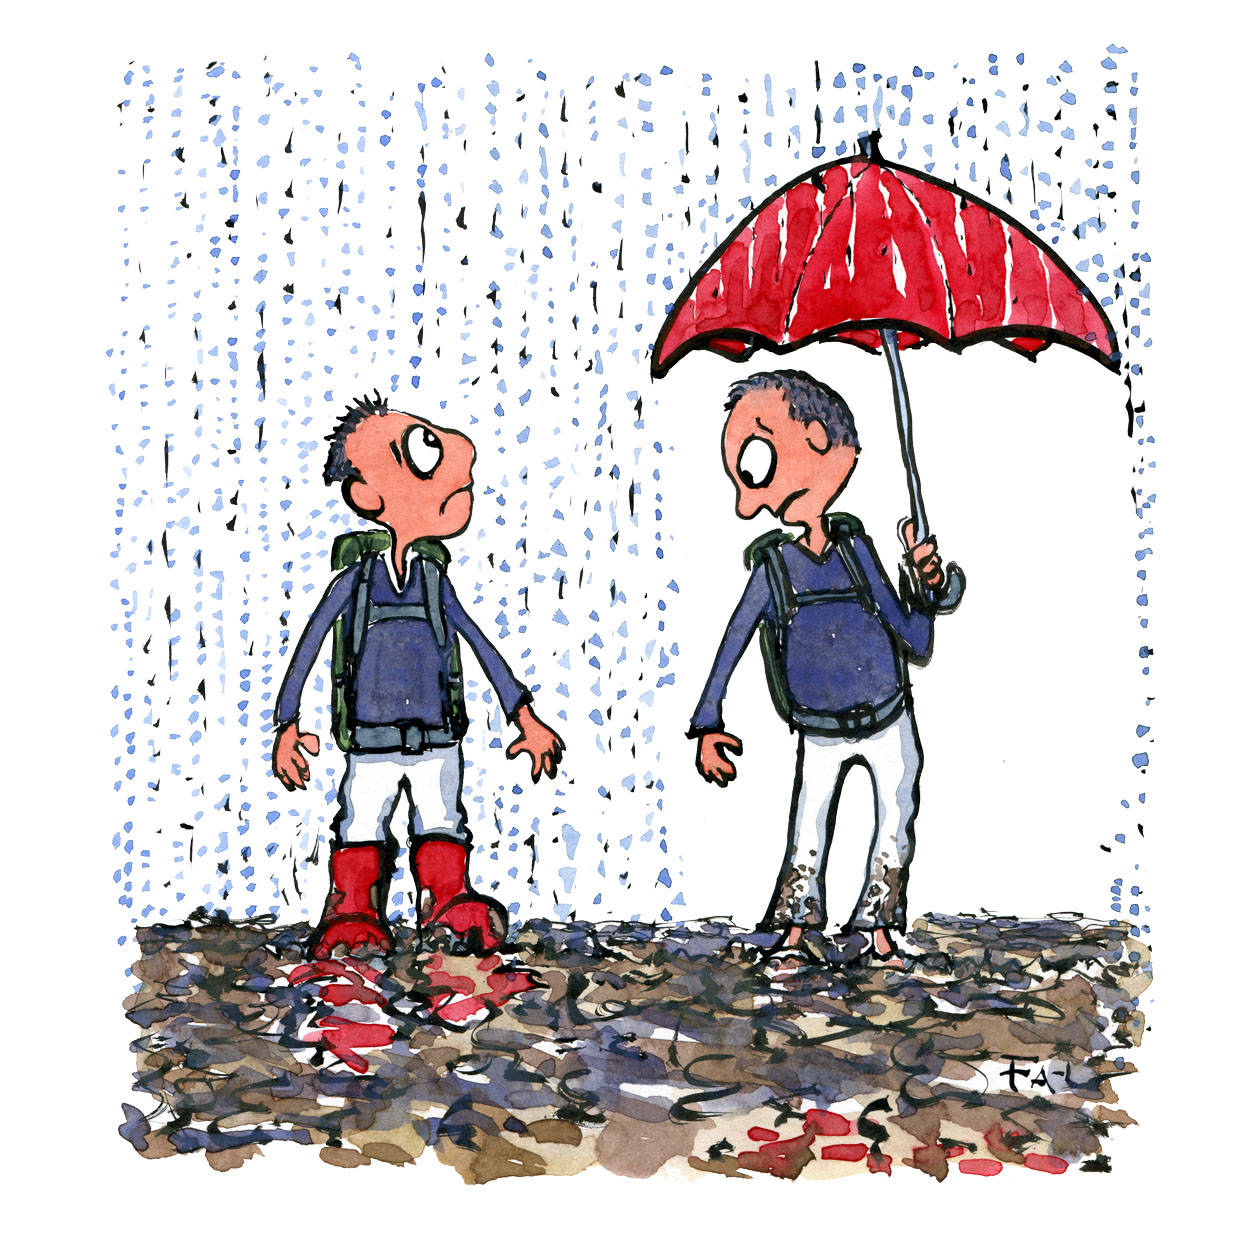 Drawing of two similar looking men in the rain. One with rain boots, the other with an umbrella. Each looking at what the other have. Illustration by Frits Ahlefeldt